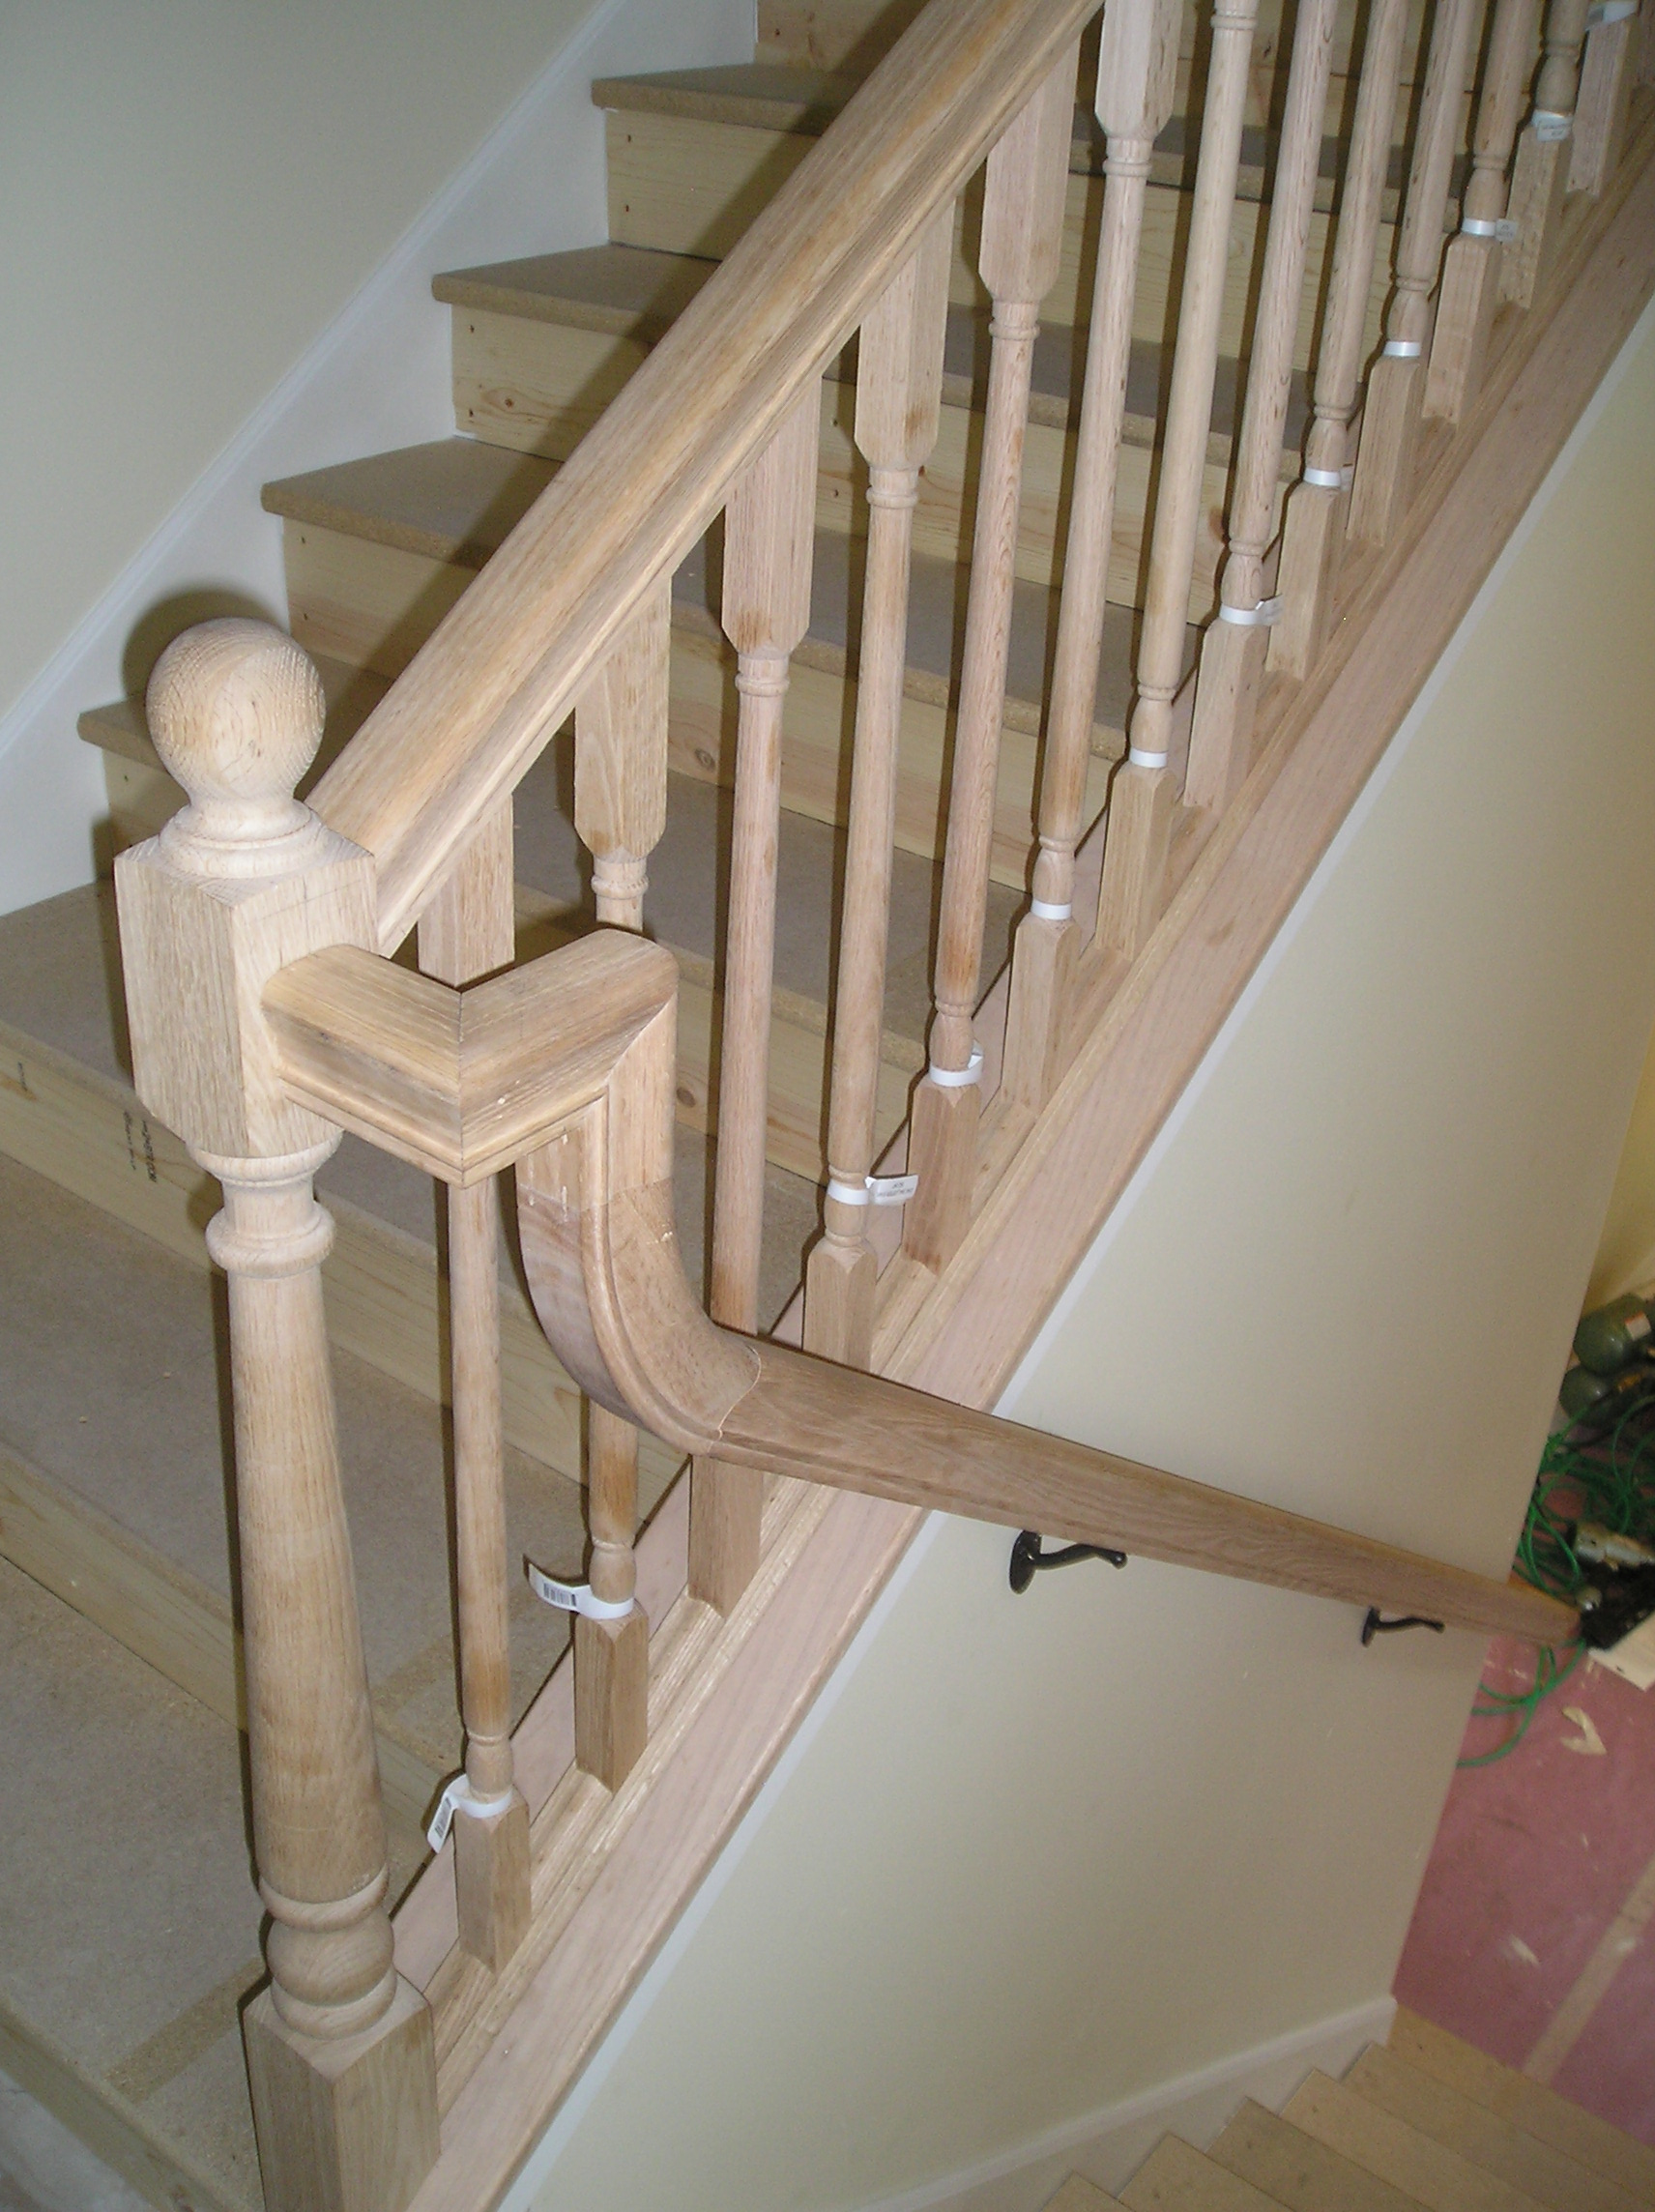 ... Stair Railing: Gooseneck Transition With Different Stair / Guardrail  Heights Picture 015.